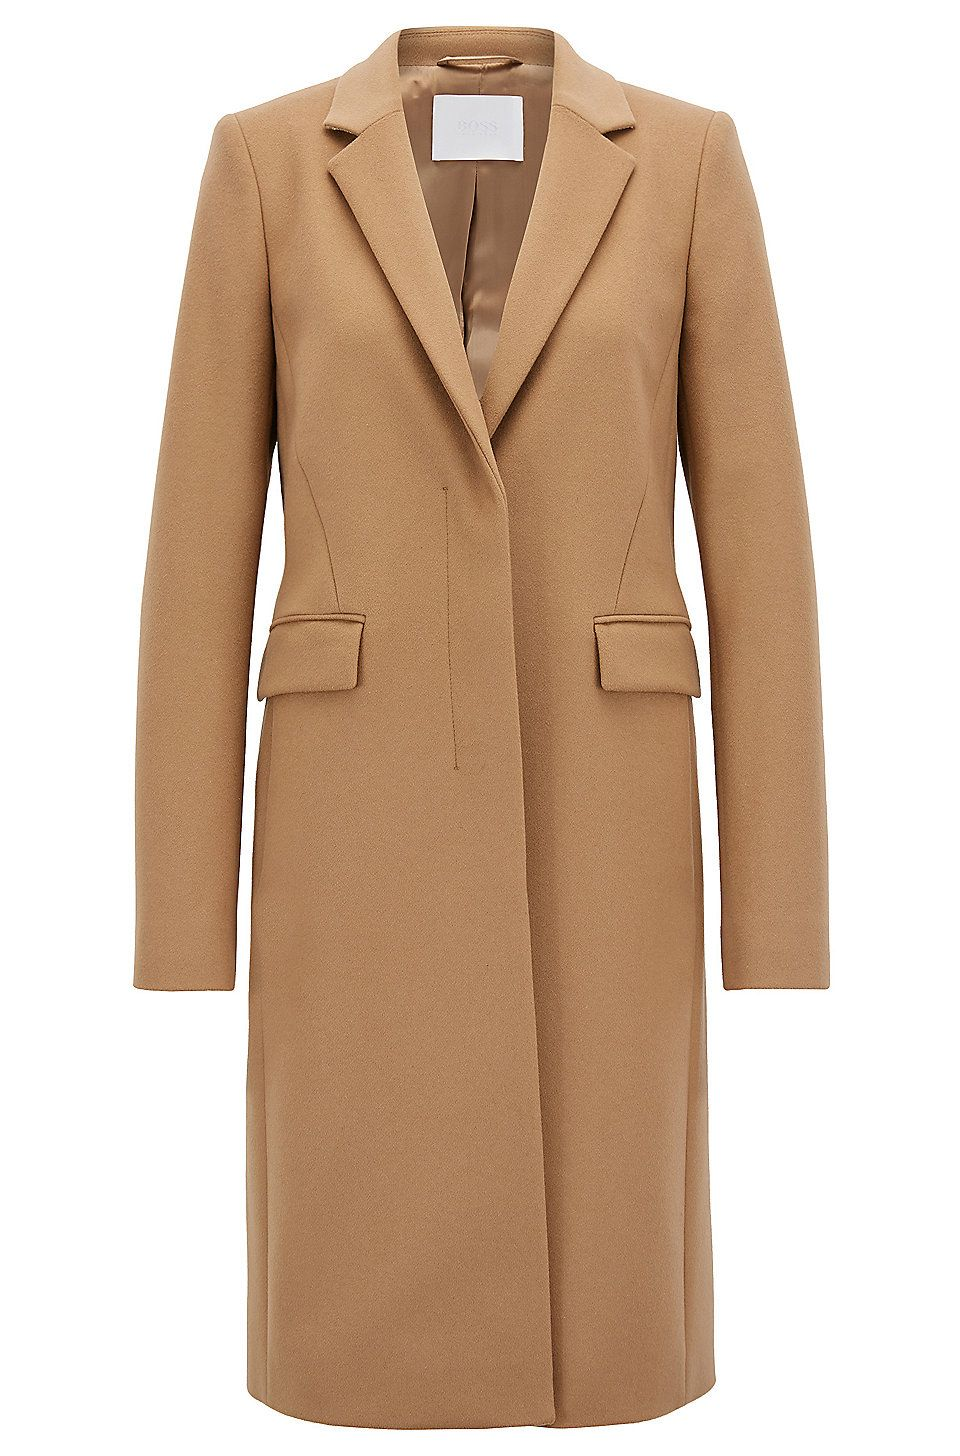 Blazer Style Coat In Italian Virgin Wool And Cashmere Brown Jackets And Coats From Boss For Women In The Official Hugo Boss Braune Jacke Mantel Mantel Braun